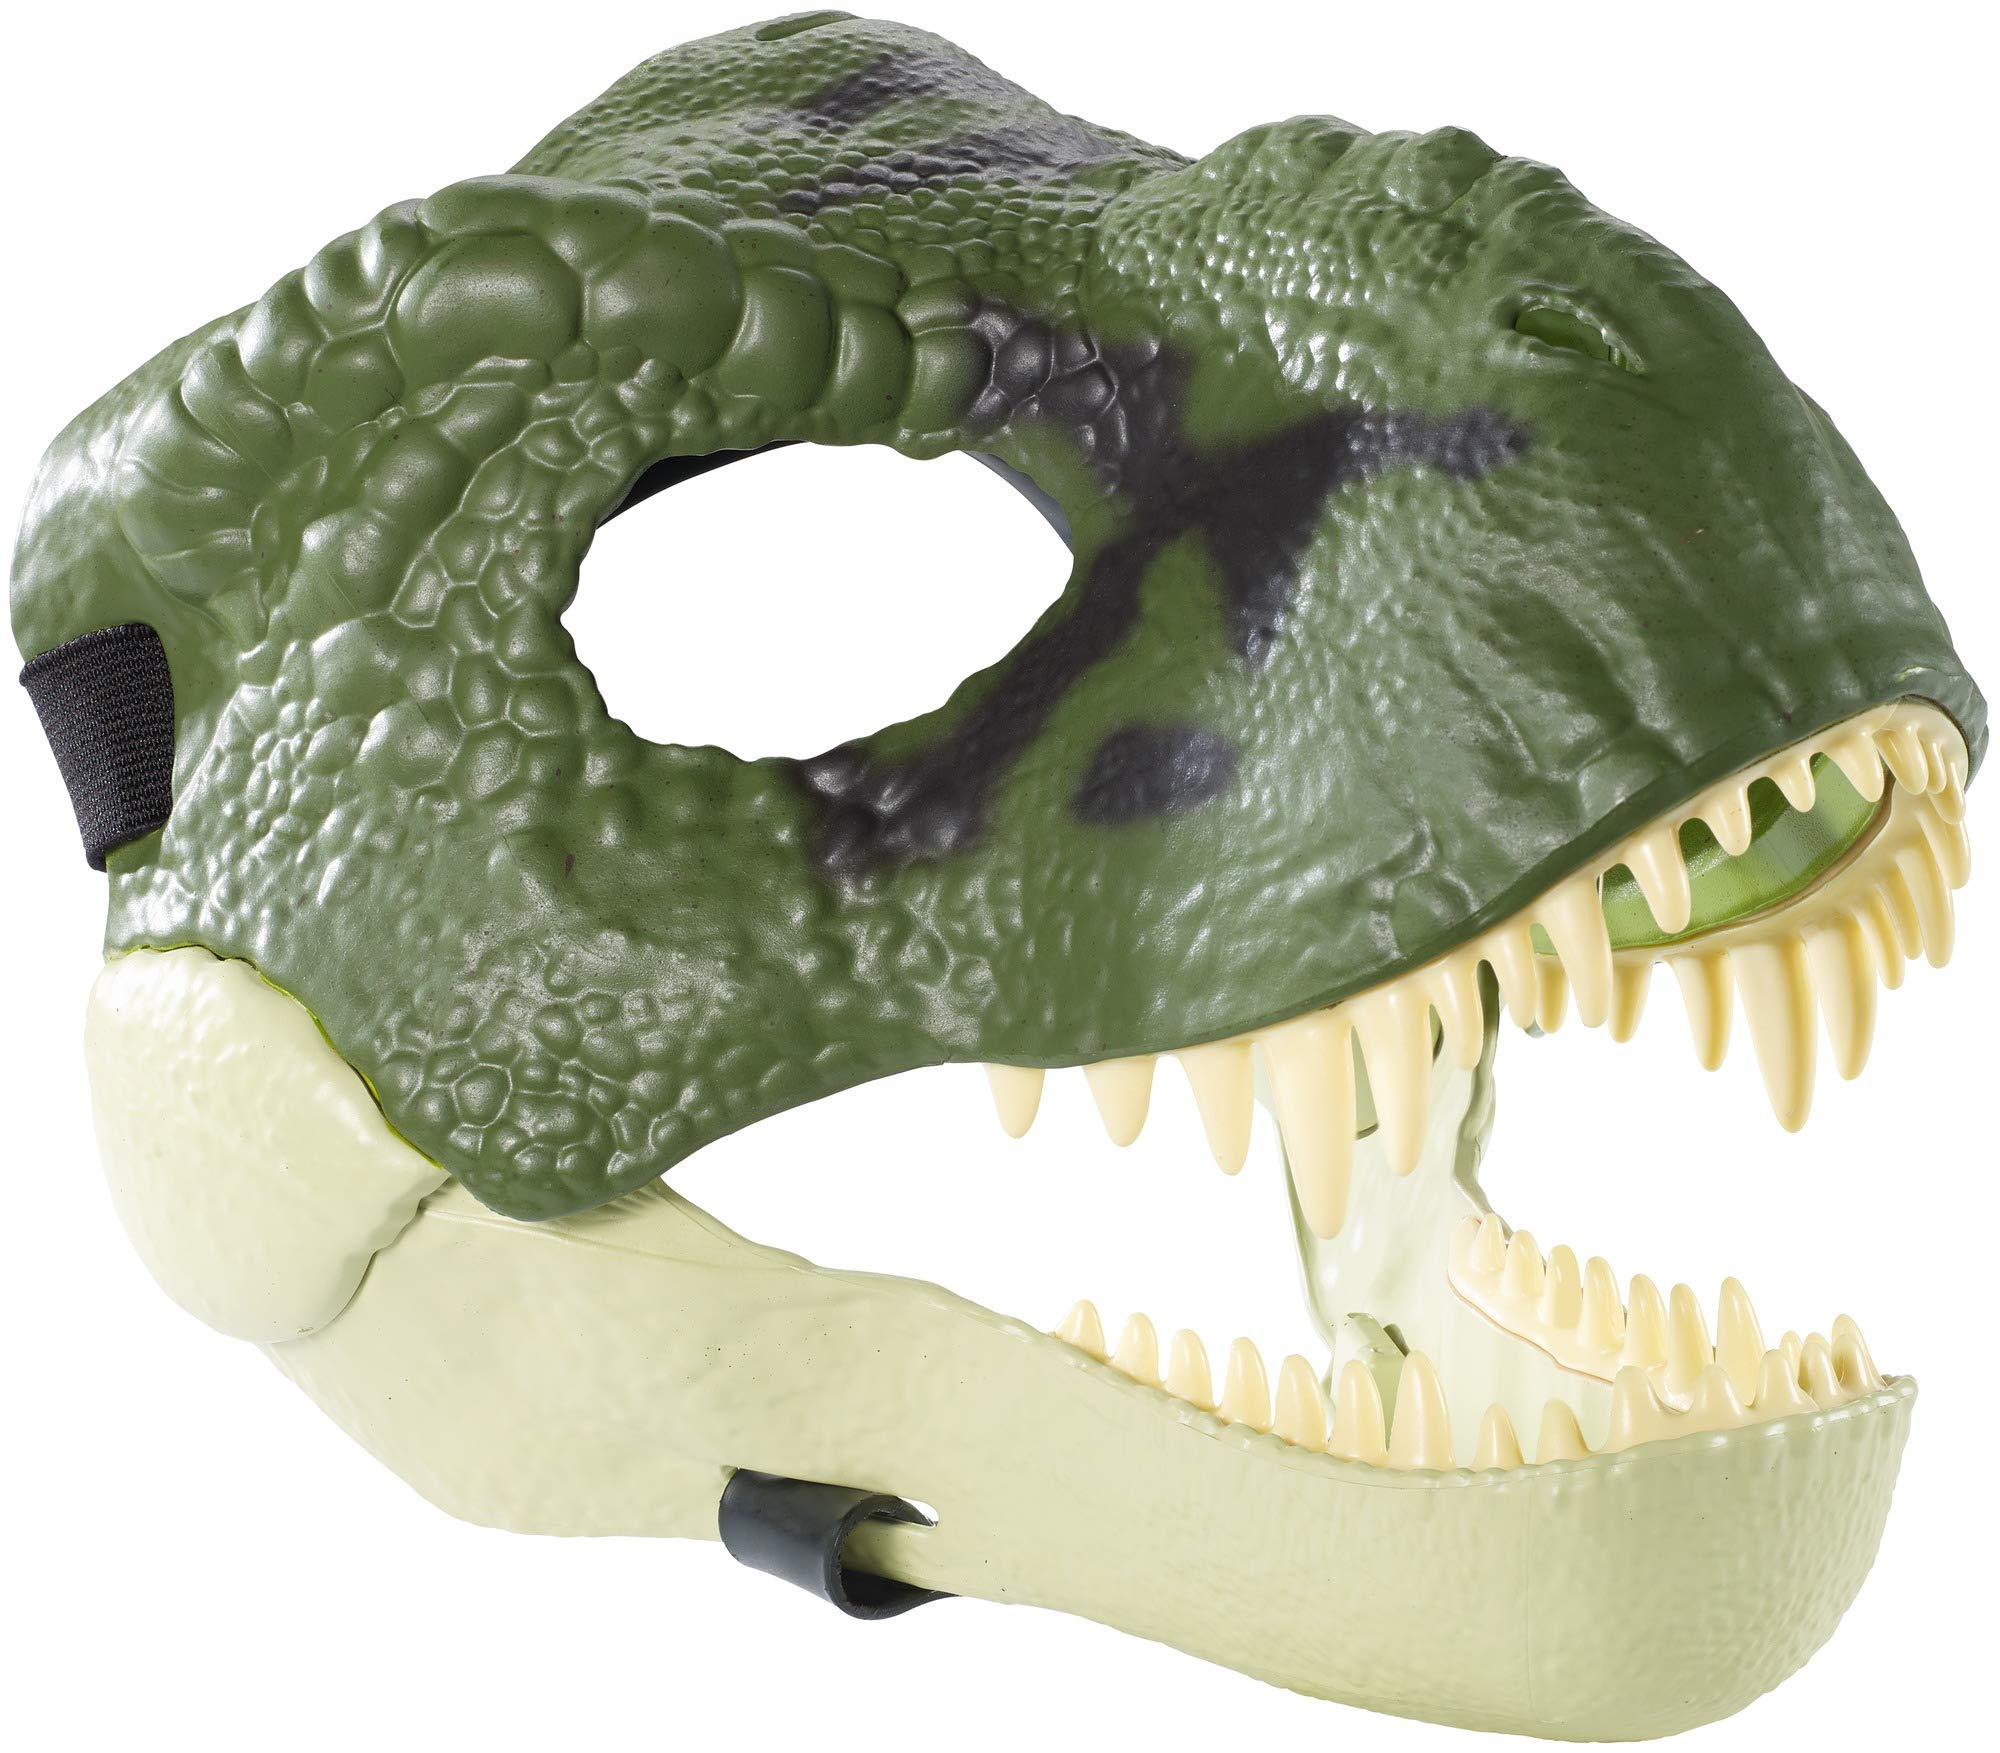 Jurassic World Movie-Inspired Tyrannosaurus Rex Mask with Opening Jaw, Realistic Texture and Color, Eye and Nose Openings and Secure Strap; Ages 4 and Up